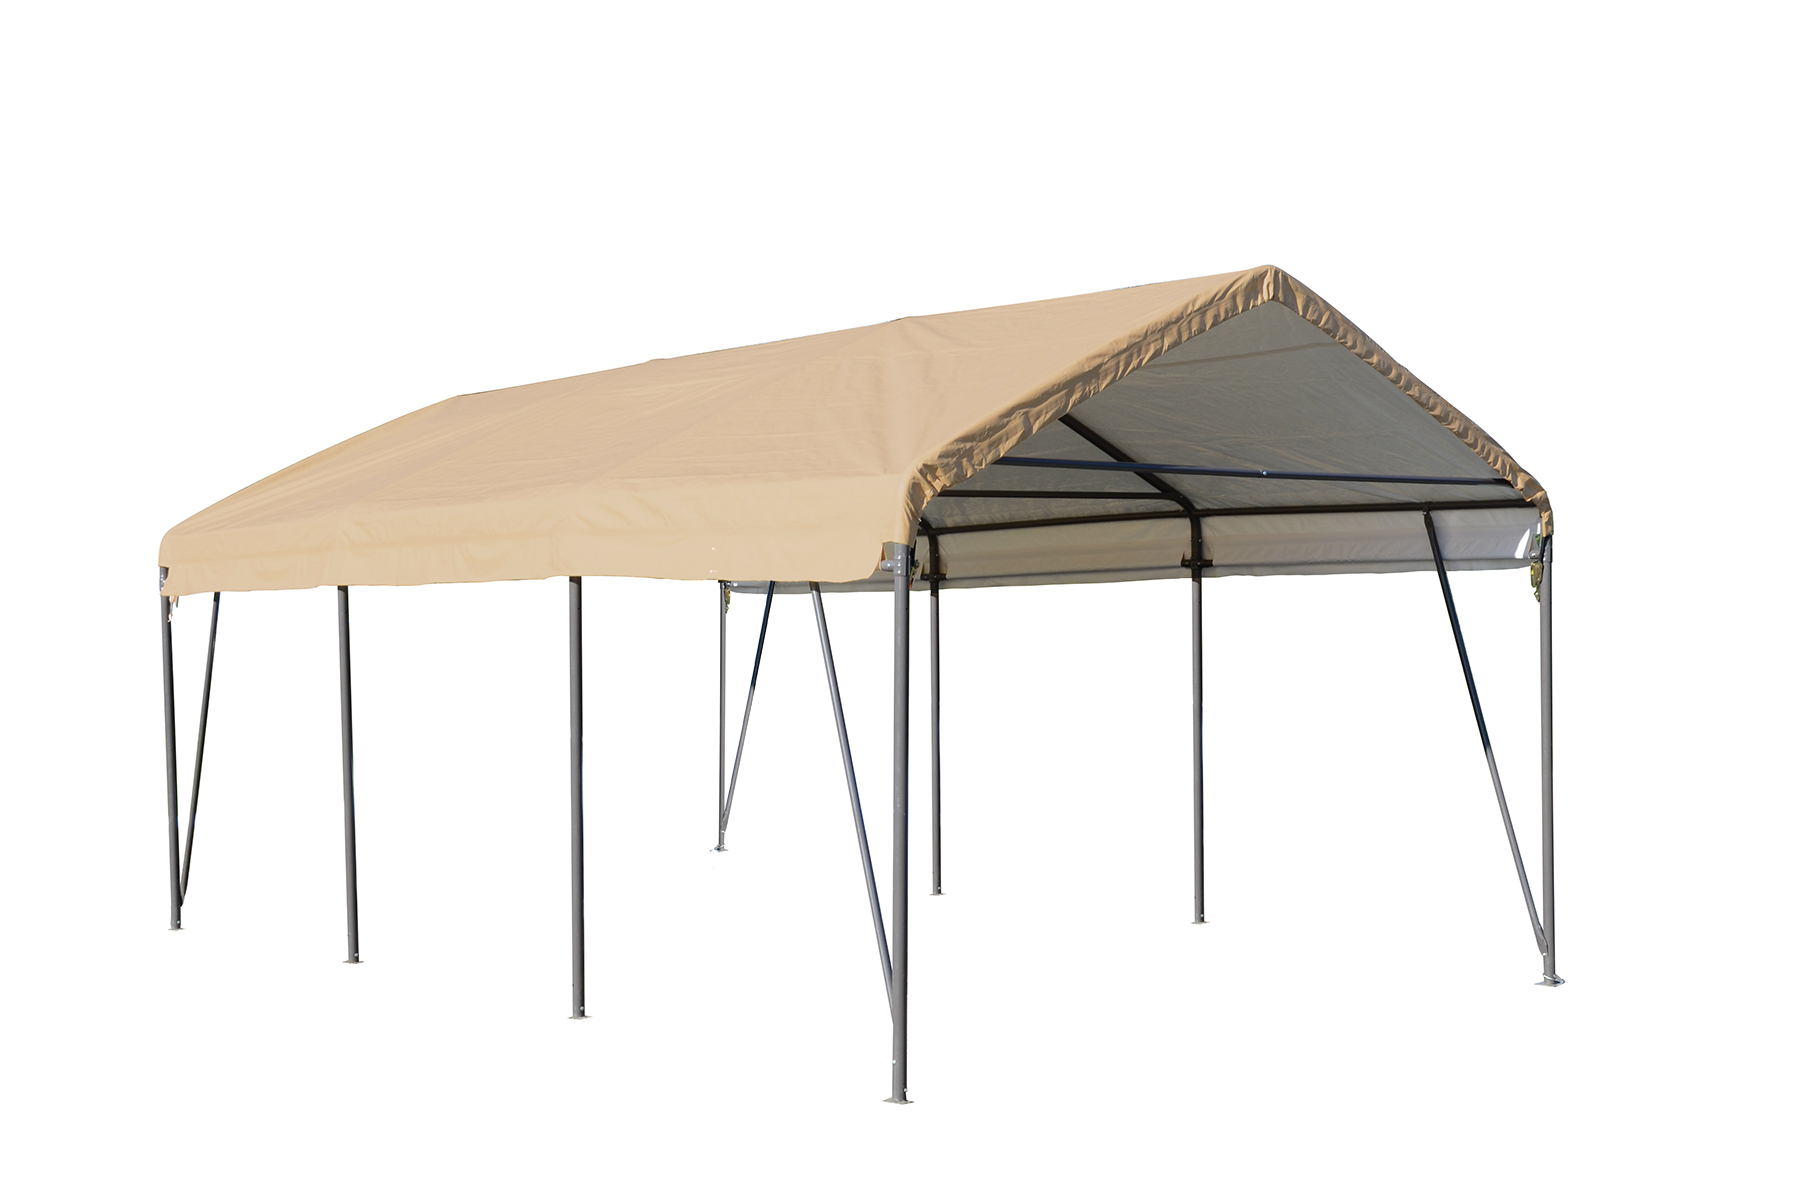 Fold Up Chair With Canopy Fold Up Canopy And Fold Up Chair With Canopy Advantage